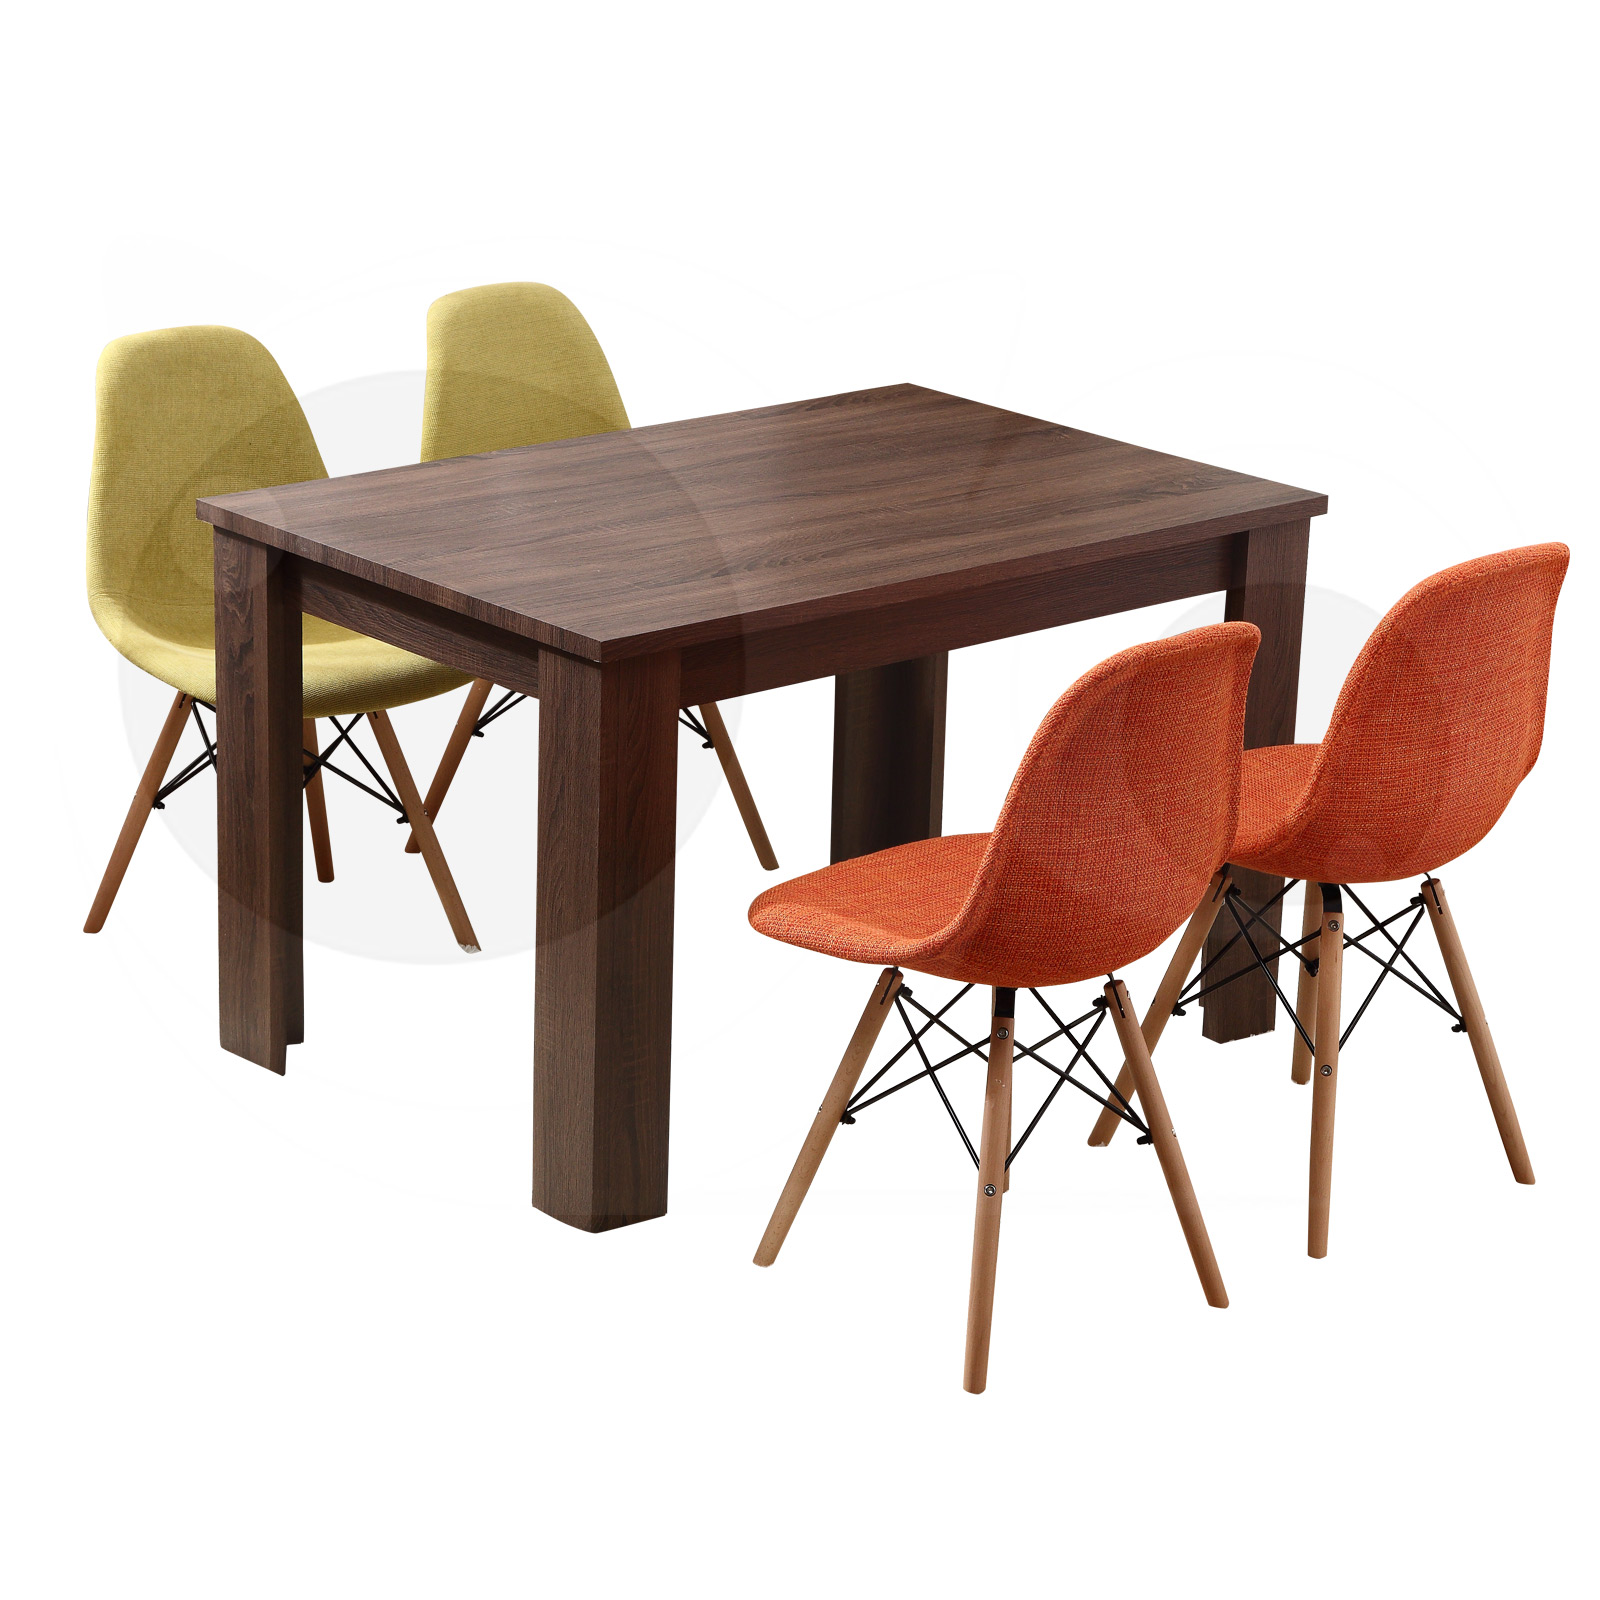 Erica Dining Table DARK BROWN + 4X Dining Chair